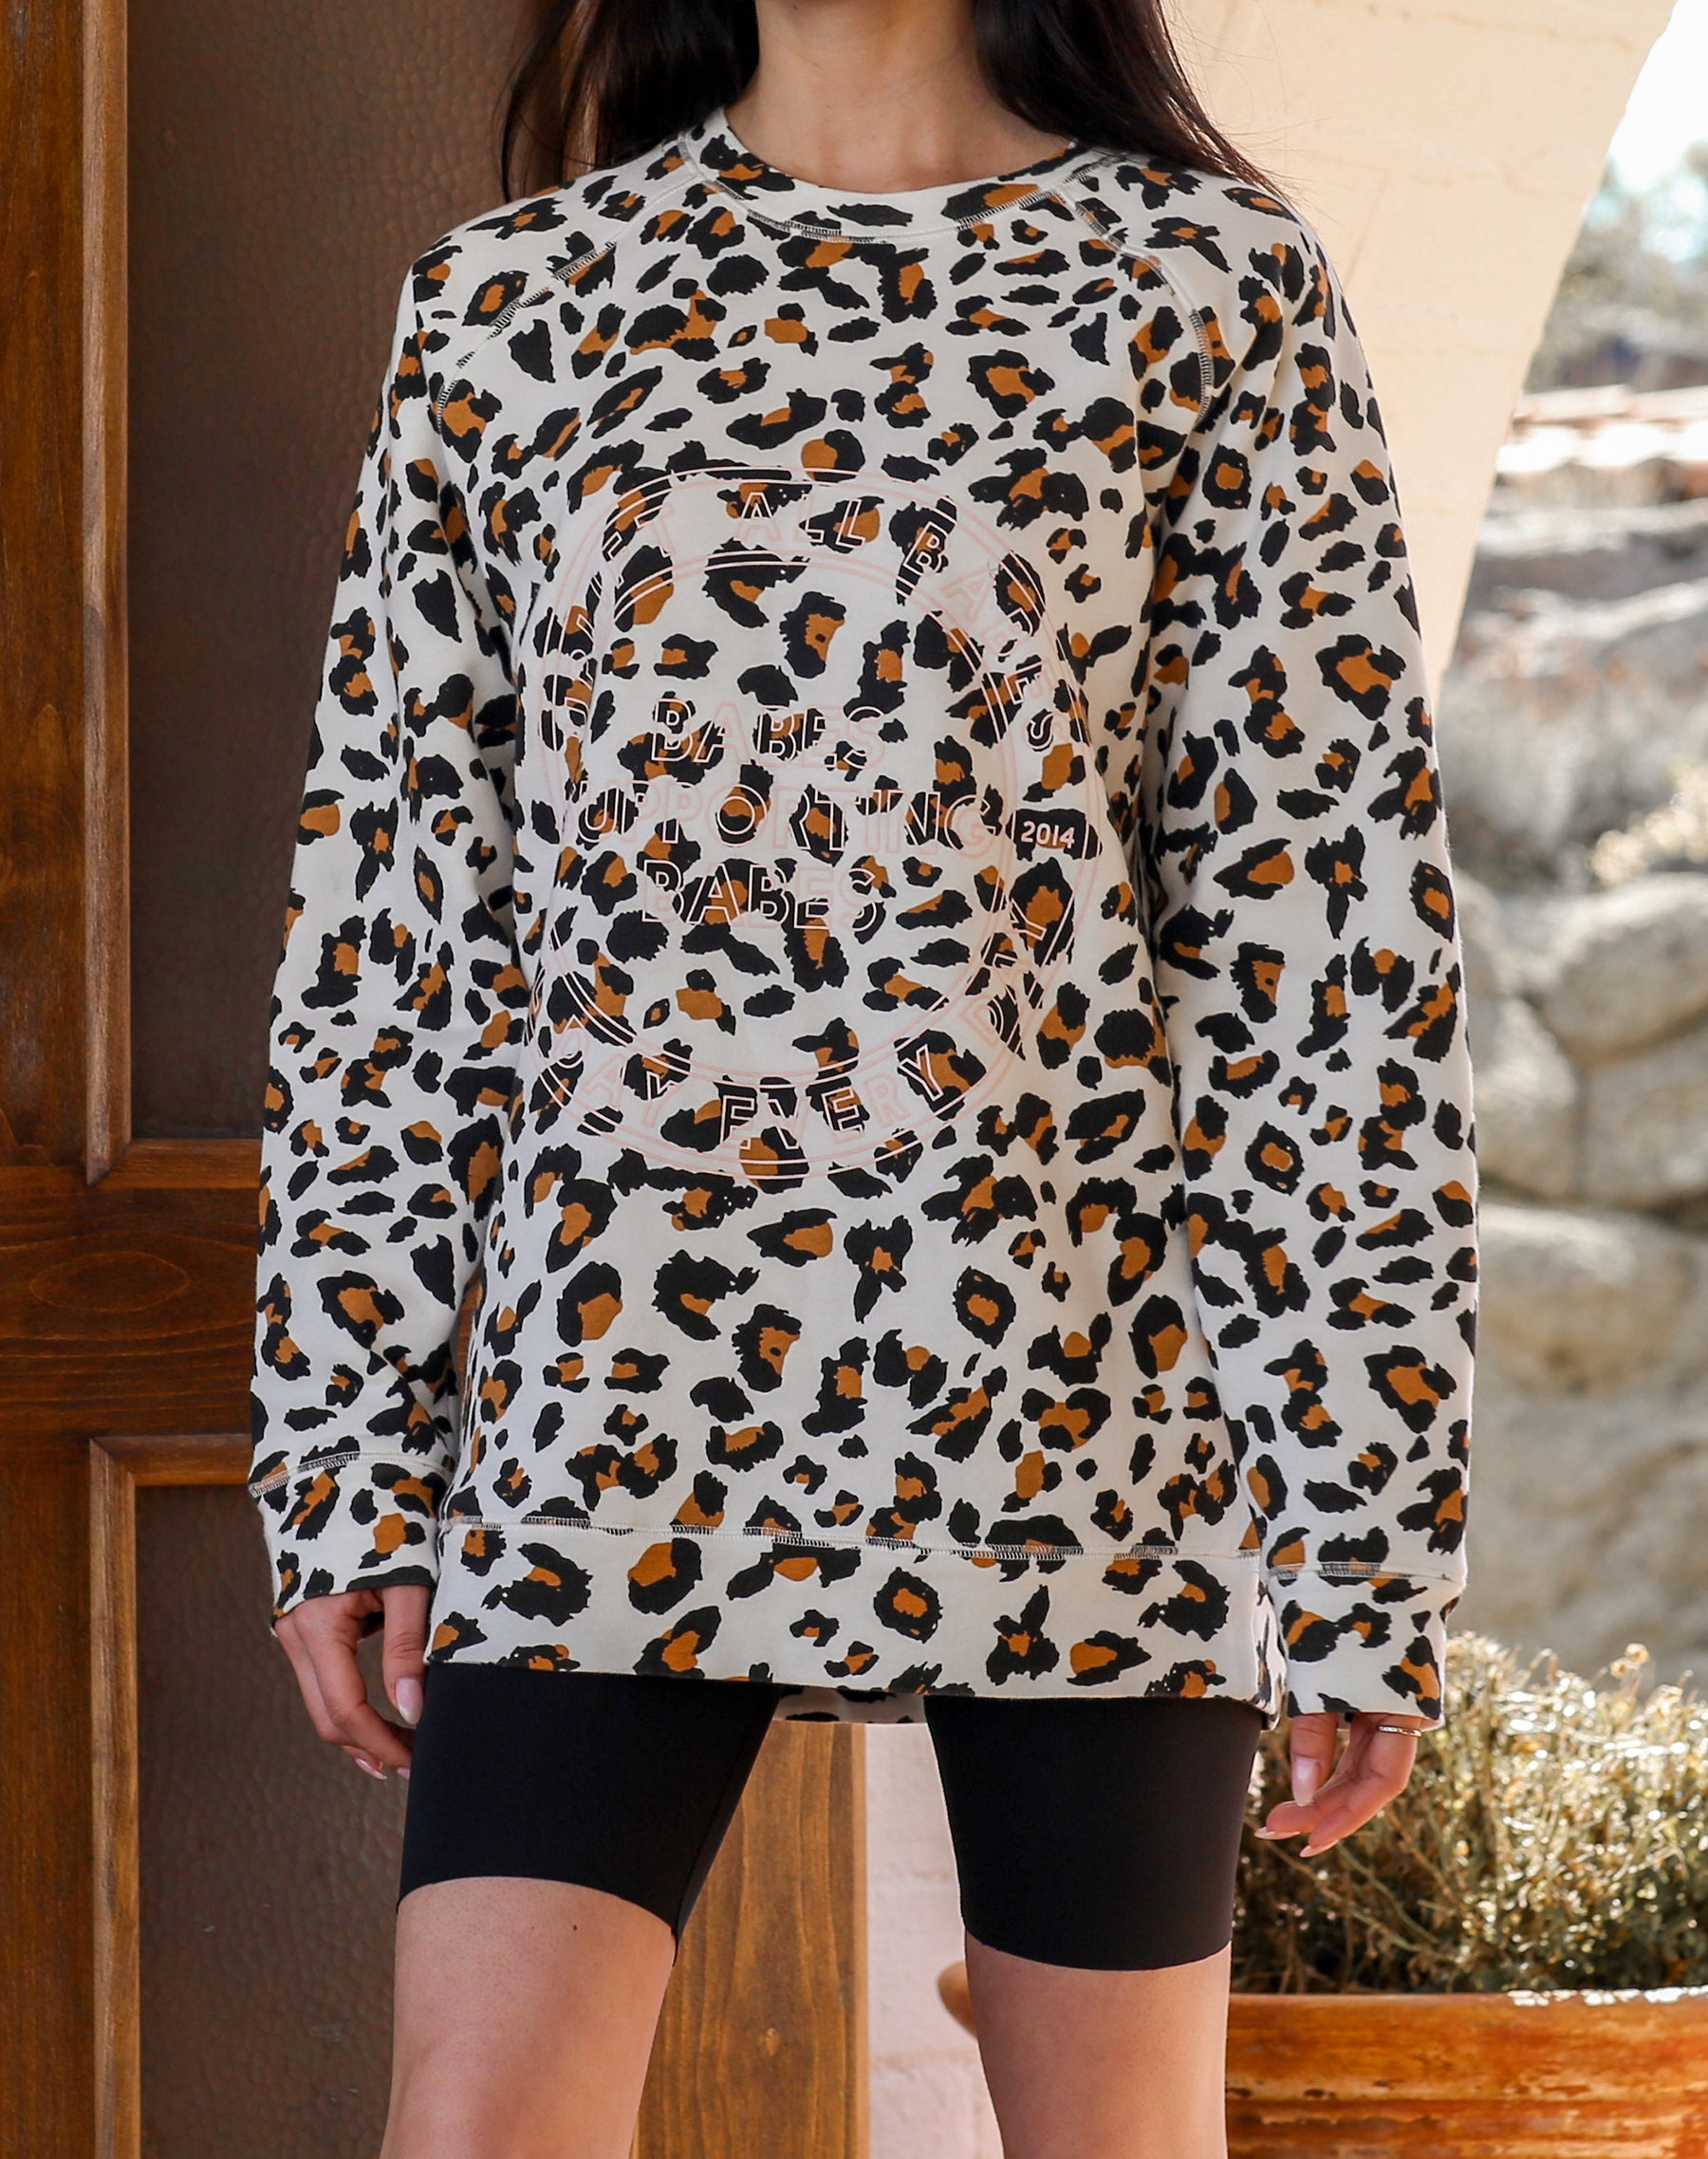 This is a campaign photo of the Uplift All Babes Big Sister Crew Neck Sweatshirt in White Leopard by Brunette the Label